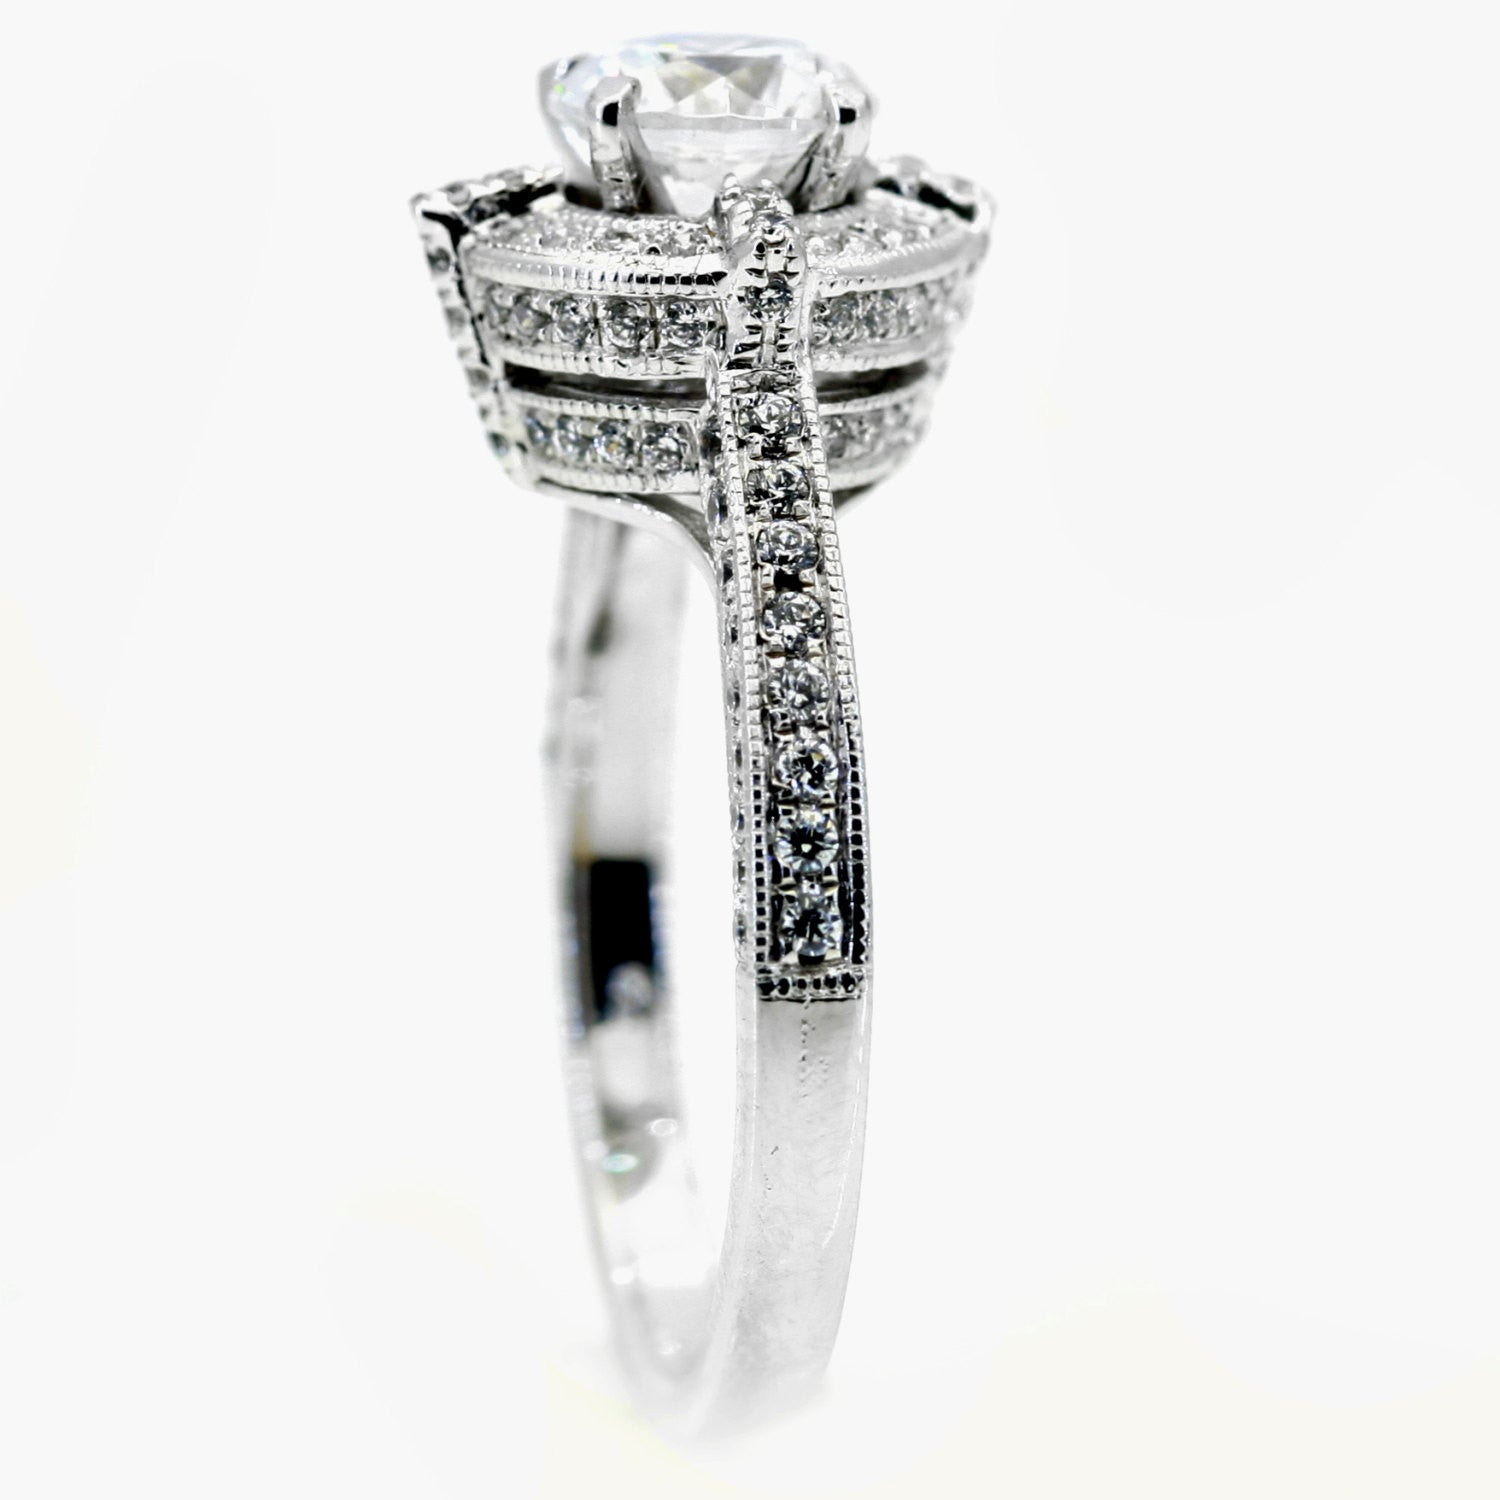 1 Carat Forever Brilliant Moissanite & .80 Carat Diamonds Unique Floating Halo Engagement Ring, Anniversary Ring, Art Deco - FB85035